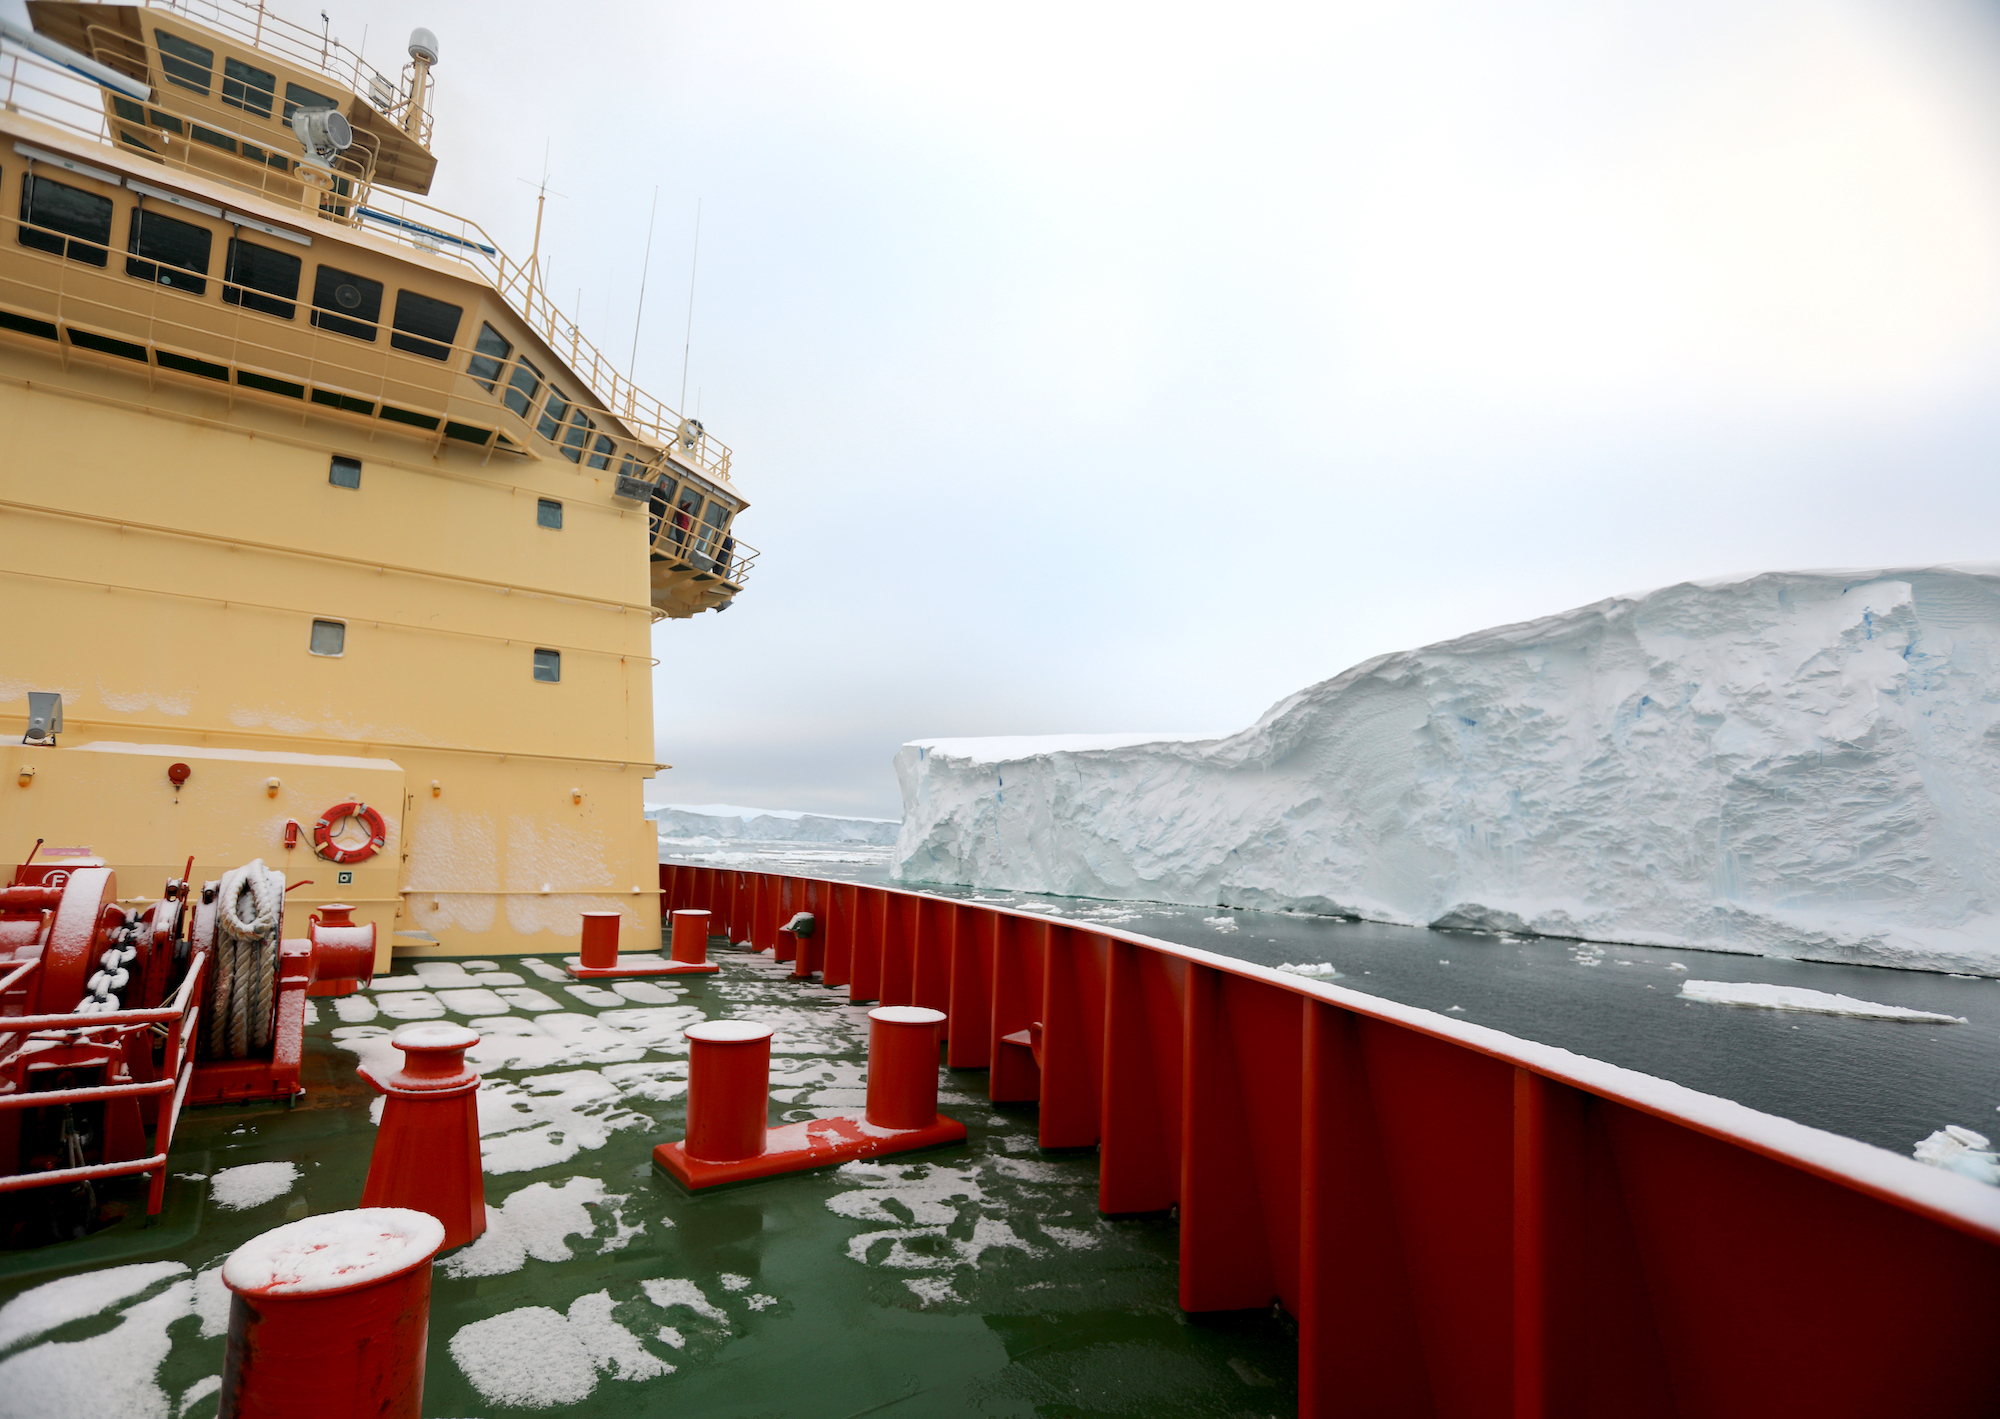 The Nathaniel B. Palmer at the face of the Thwaites Glacier Ice Shelf. The ship's close distance to the ice allows detailed mapping of the front and multibeam bathymetry. The angle of the echo sounder beam extends beneath the ice edge to see the seafloor a few meters under the shelf. I will talk about Thwaites Glacier itself in the next blog.